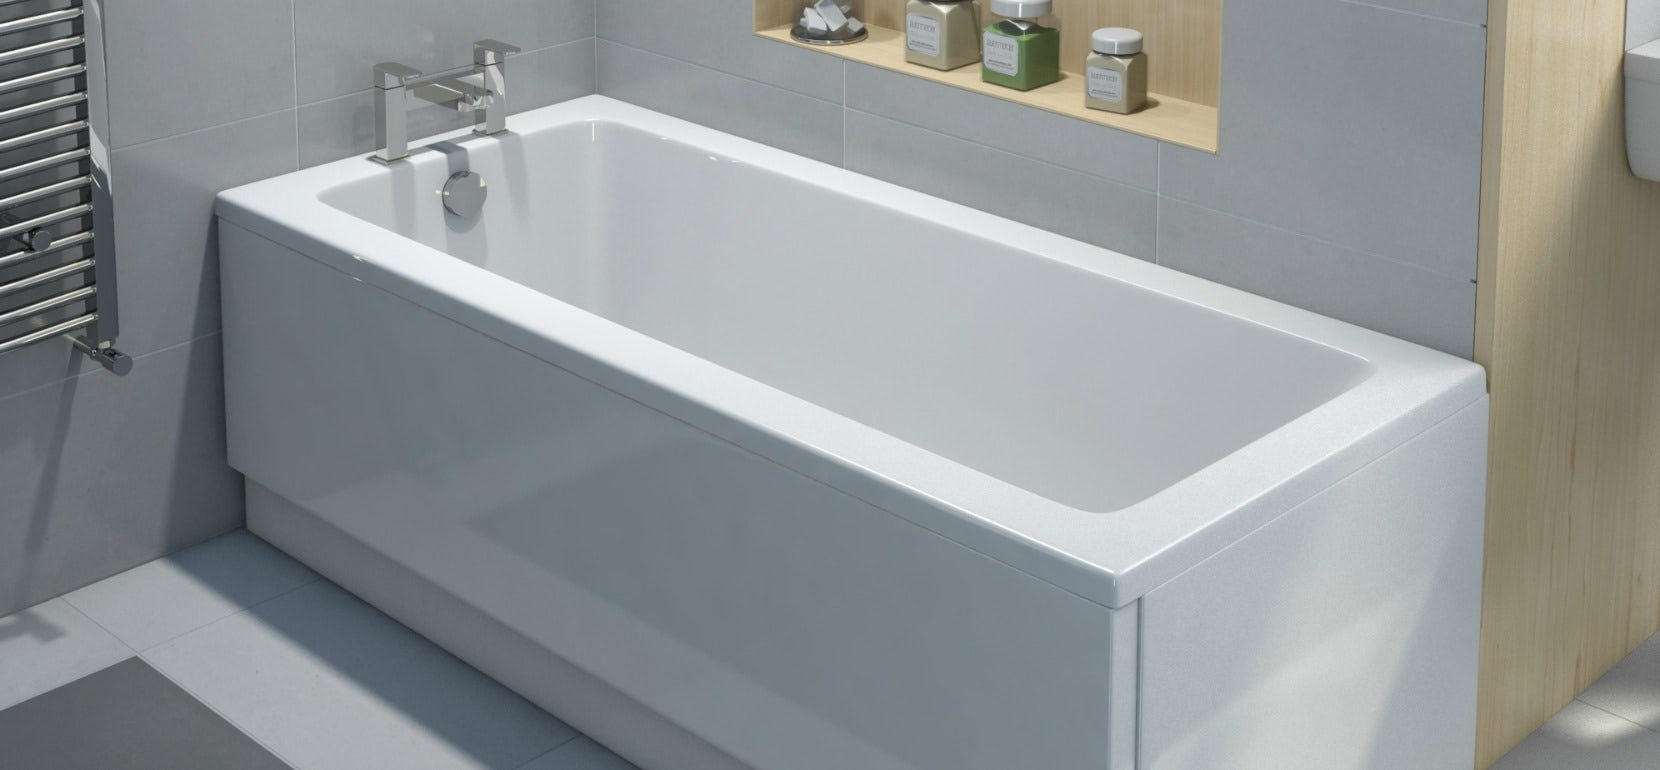 Beau Acrylic Baths V Steel Baths U2013 Which Is Right For Me?